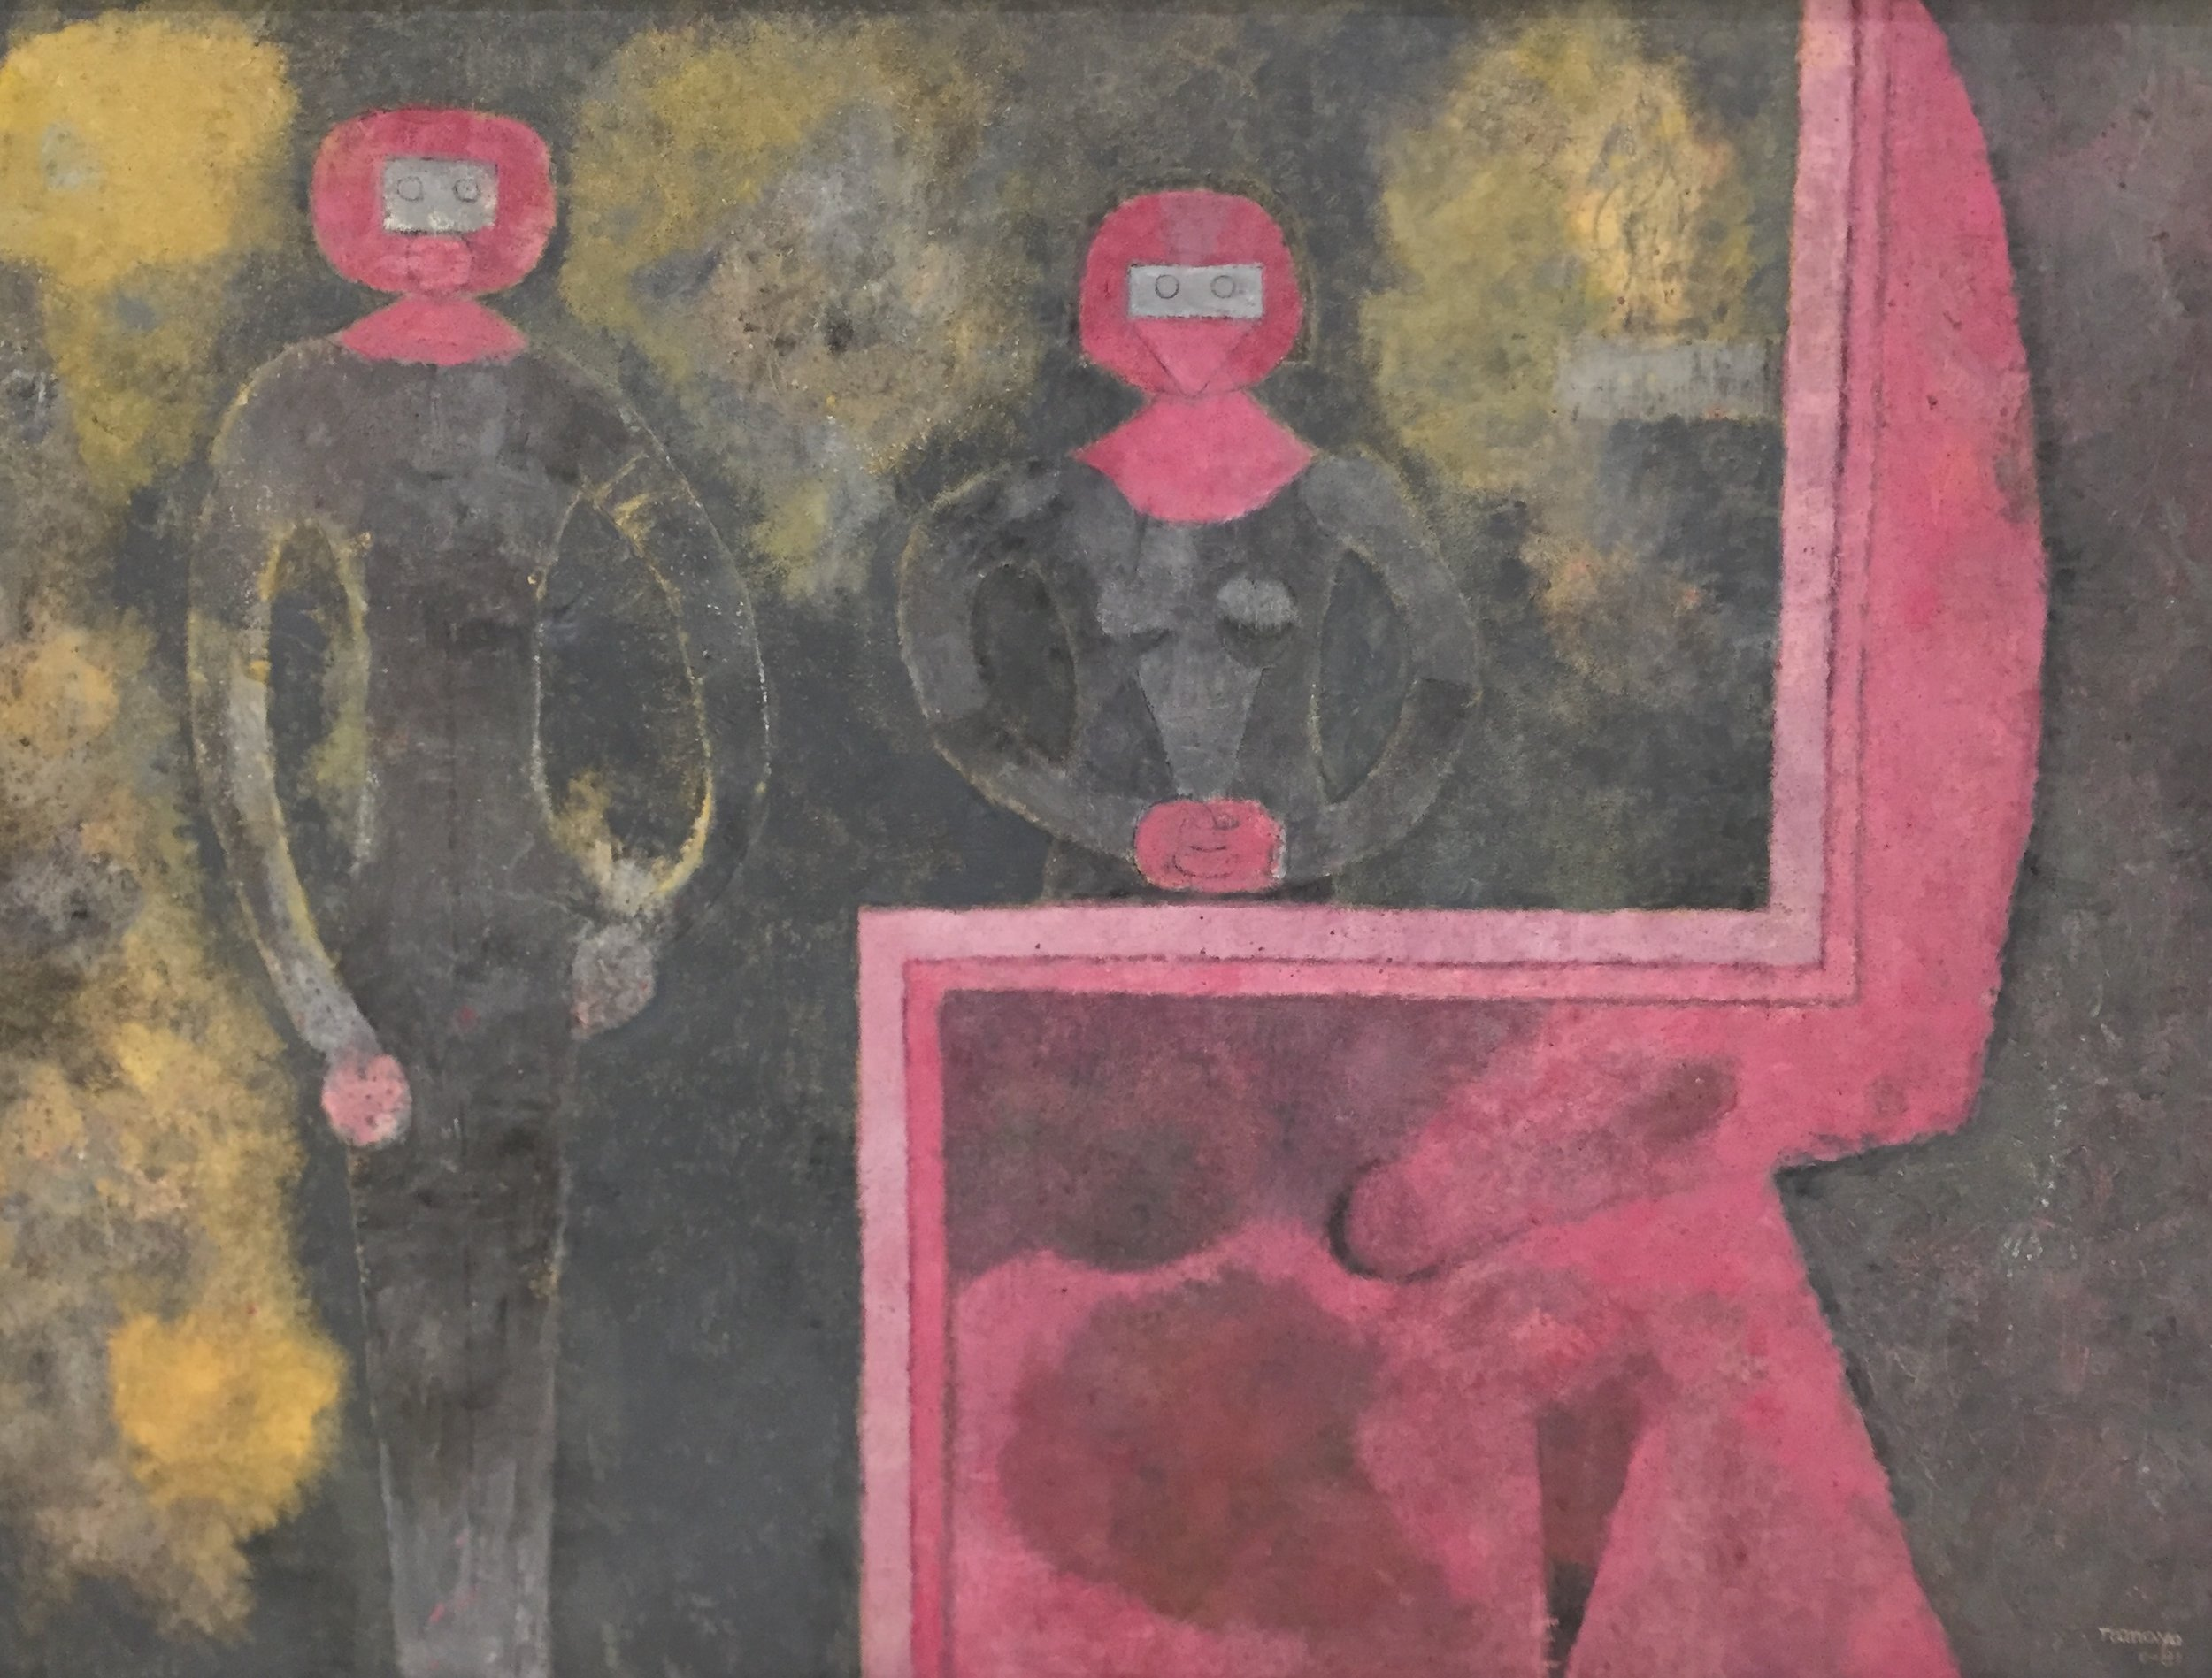 Rufino tamayo,  retrato conjugal , 1981.Oil on canvas, 95 x 130.1 cm. Collection: museo tamayo, mexico city. image:christopher squier. Image posted january 11, 2018.